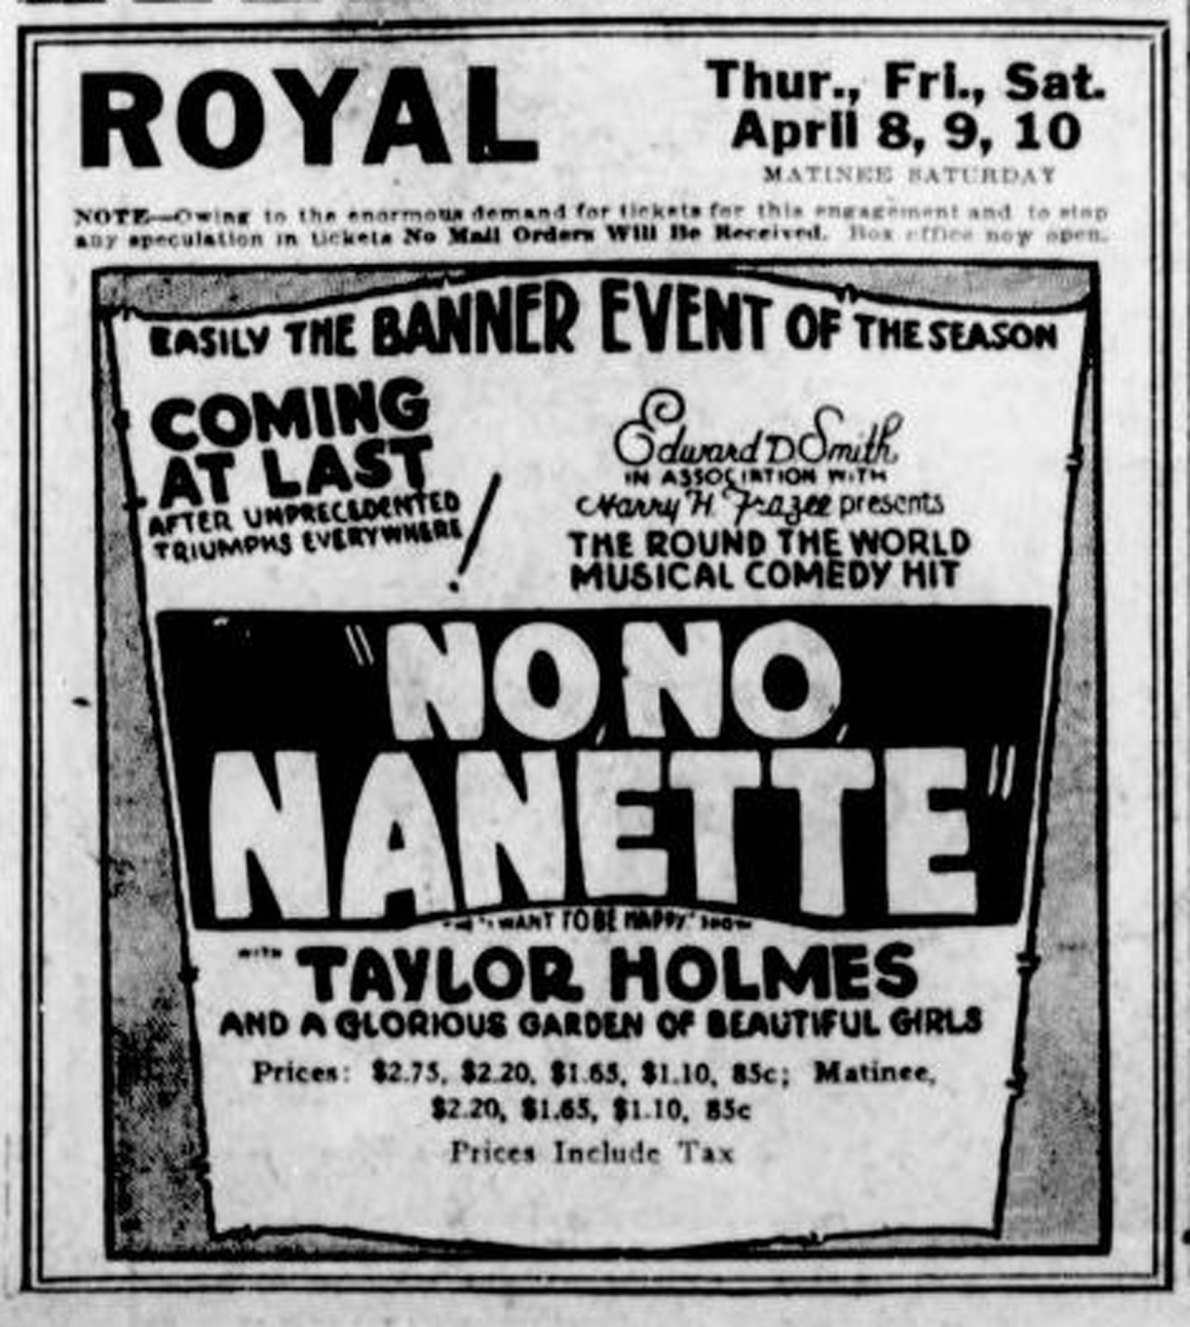 1926 advertisement for the Royal Theatre, 805 Broughton Street for a live production of No No Nanette starring Taylor Holmes. This show debuted in Los Angeles on 9 March 1925 and travelled for one year before reaching Broadway in New York City. (Victoria Online Sightseeing Tours collection)